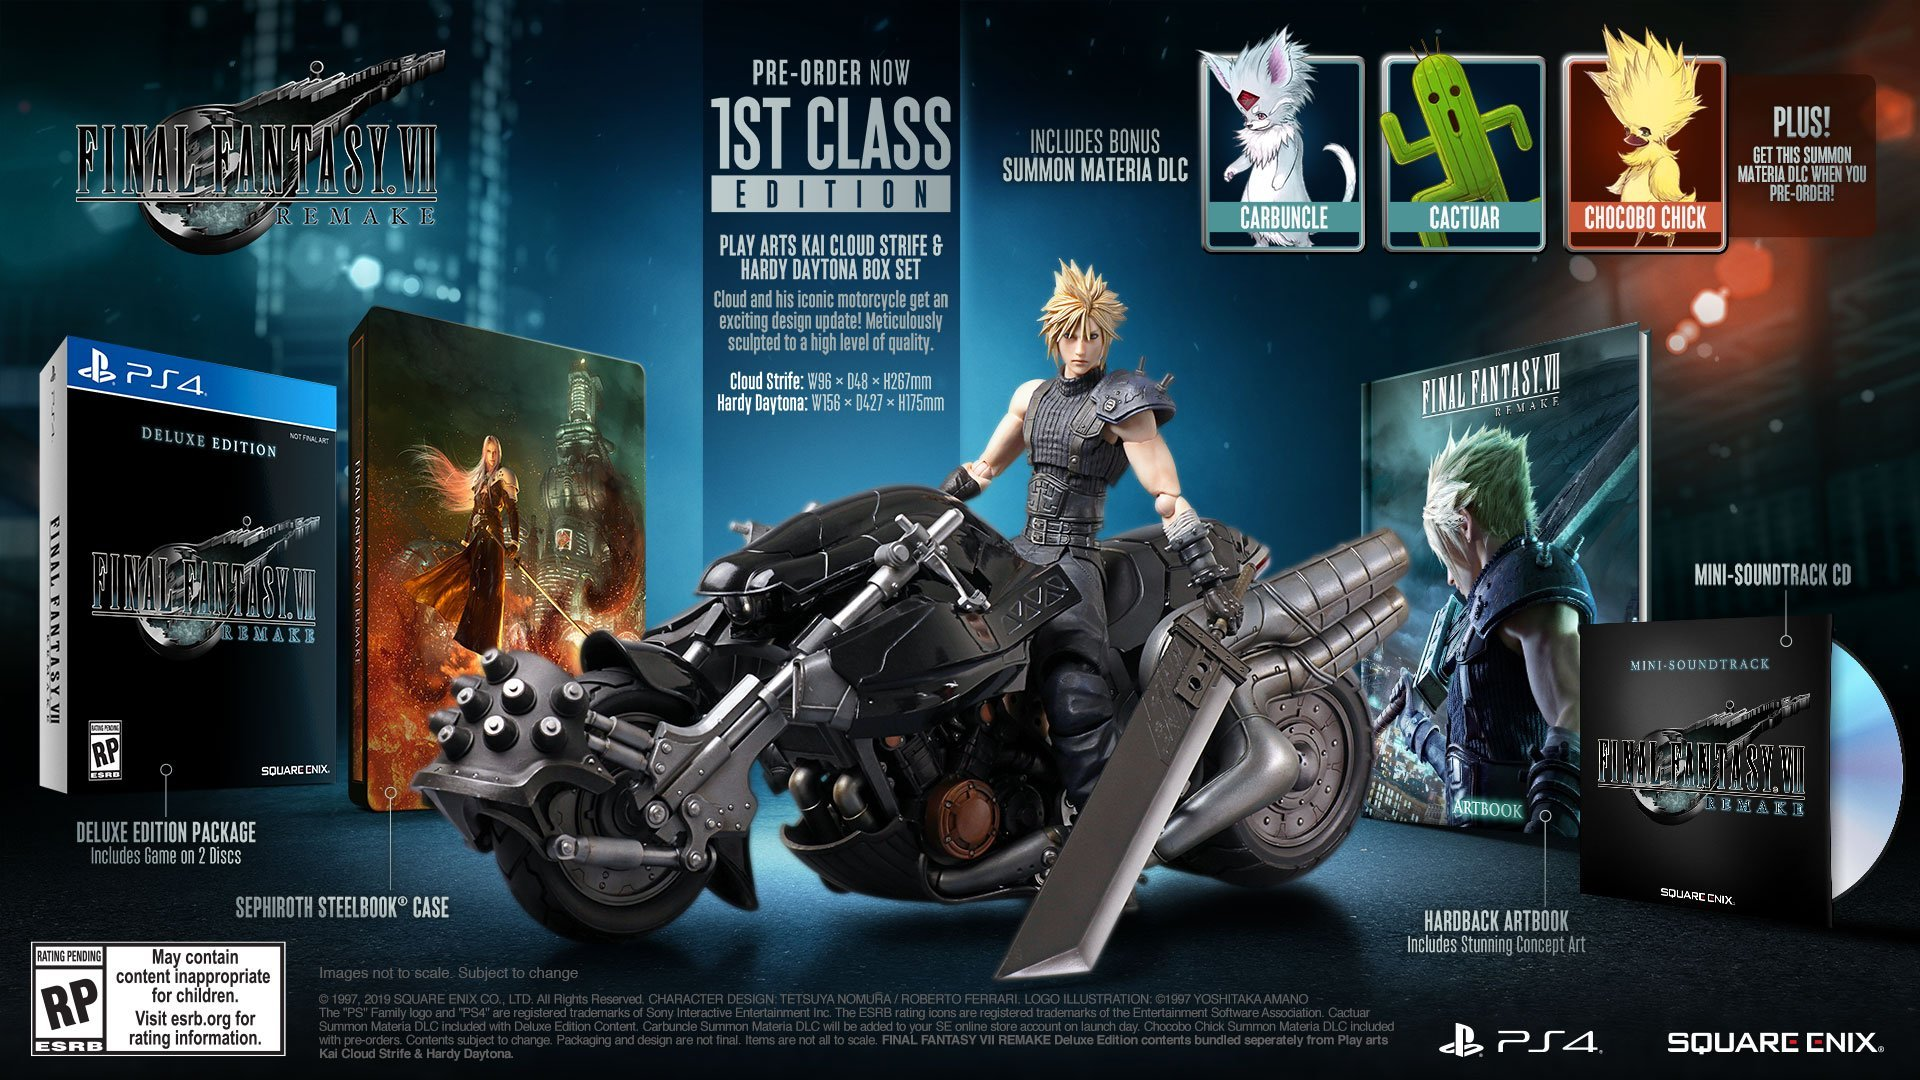 You can pre-order the Final Fantasy 7 Remake right now, including the Collector's Edition which is priced at $330.